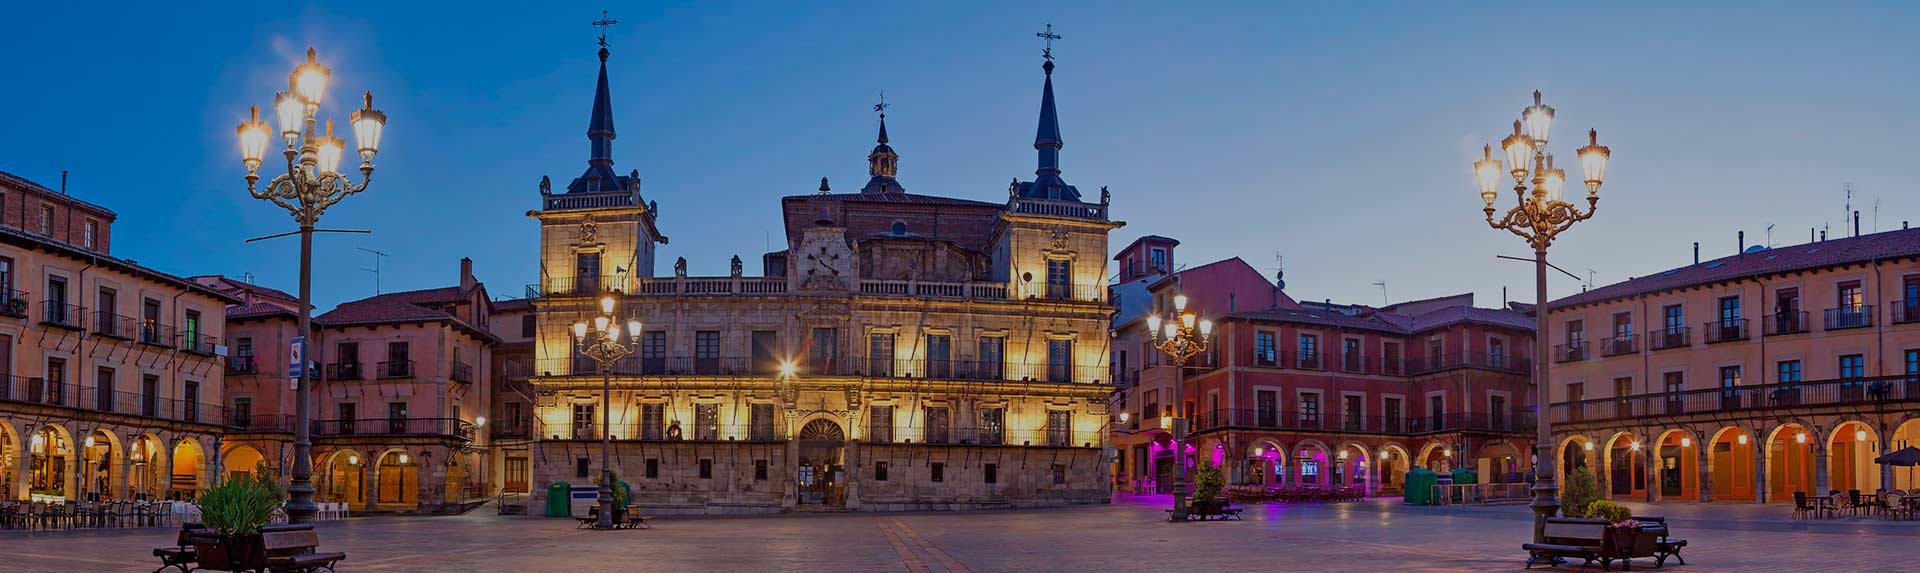 UPL Plaza mayor de león